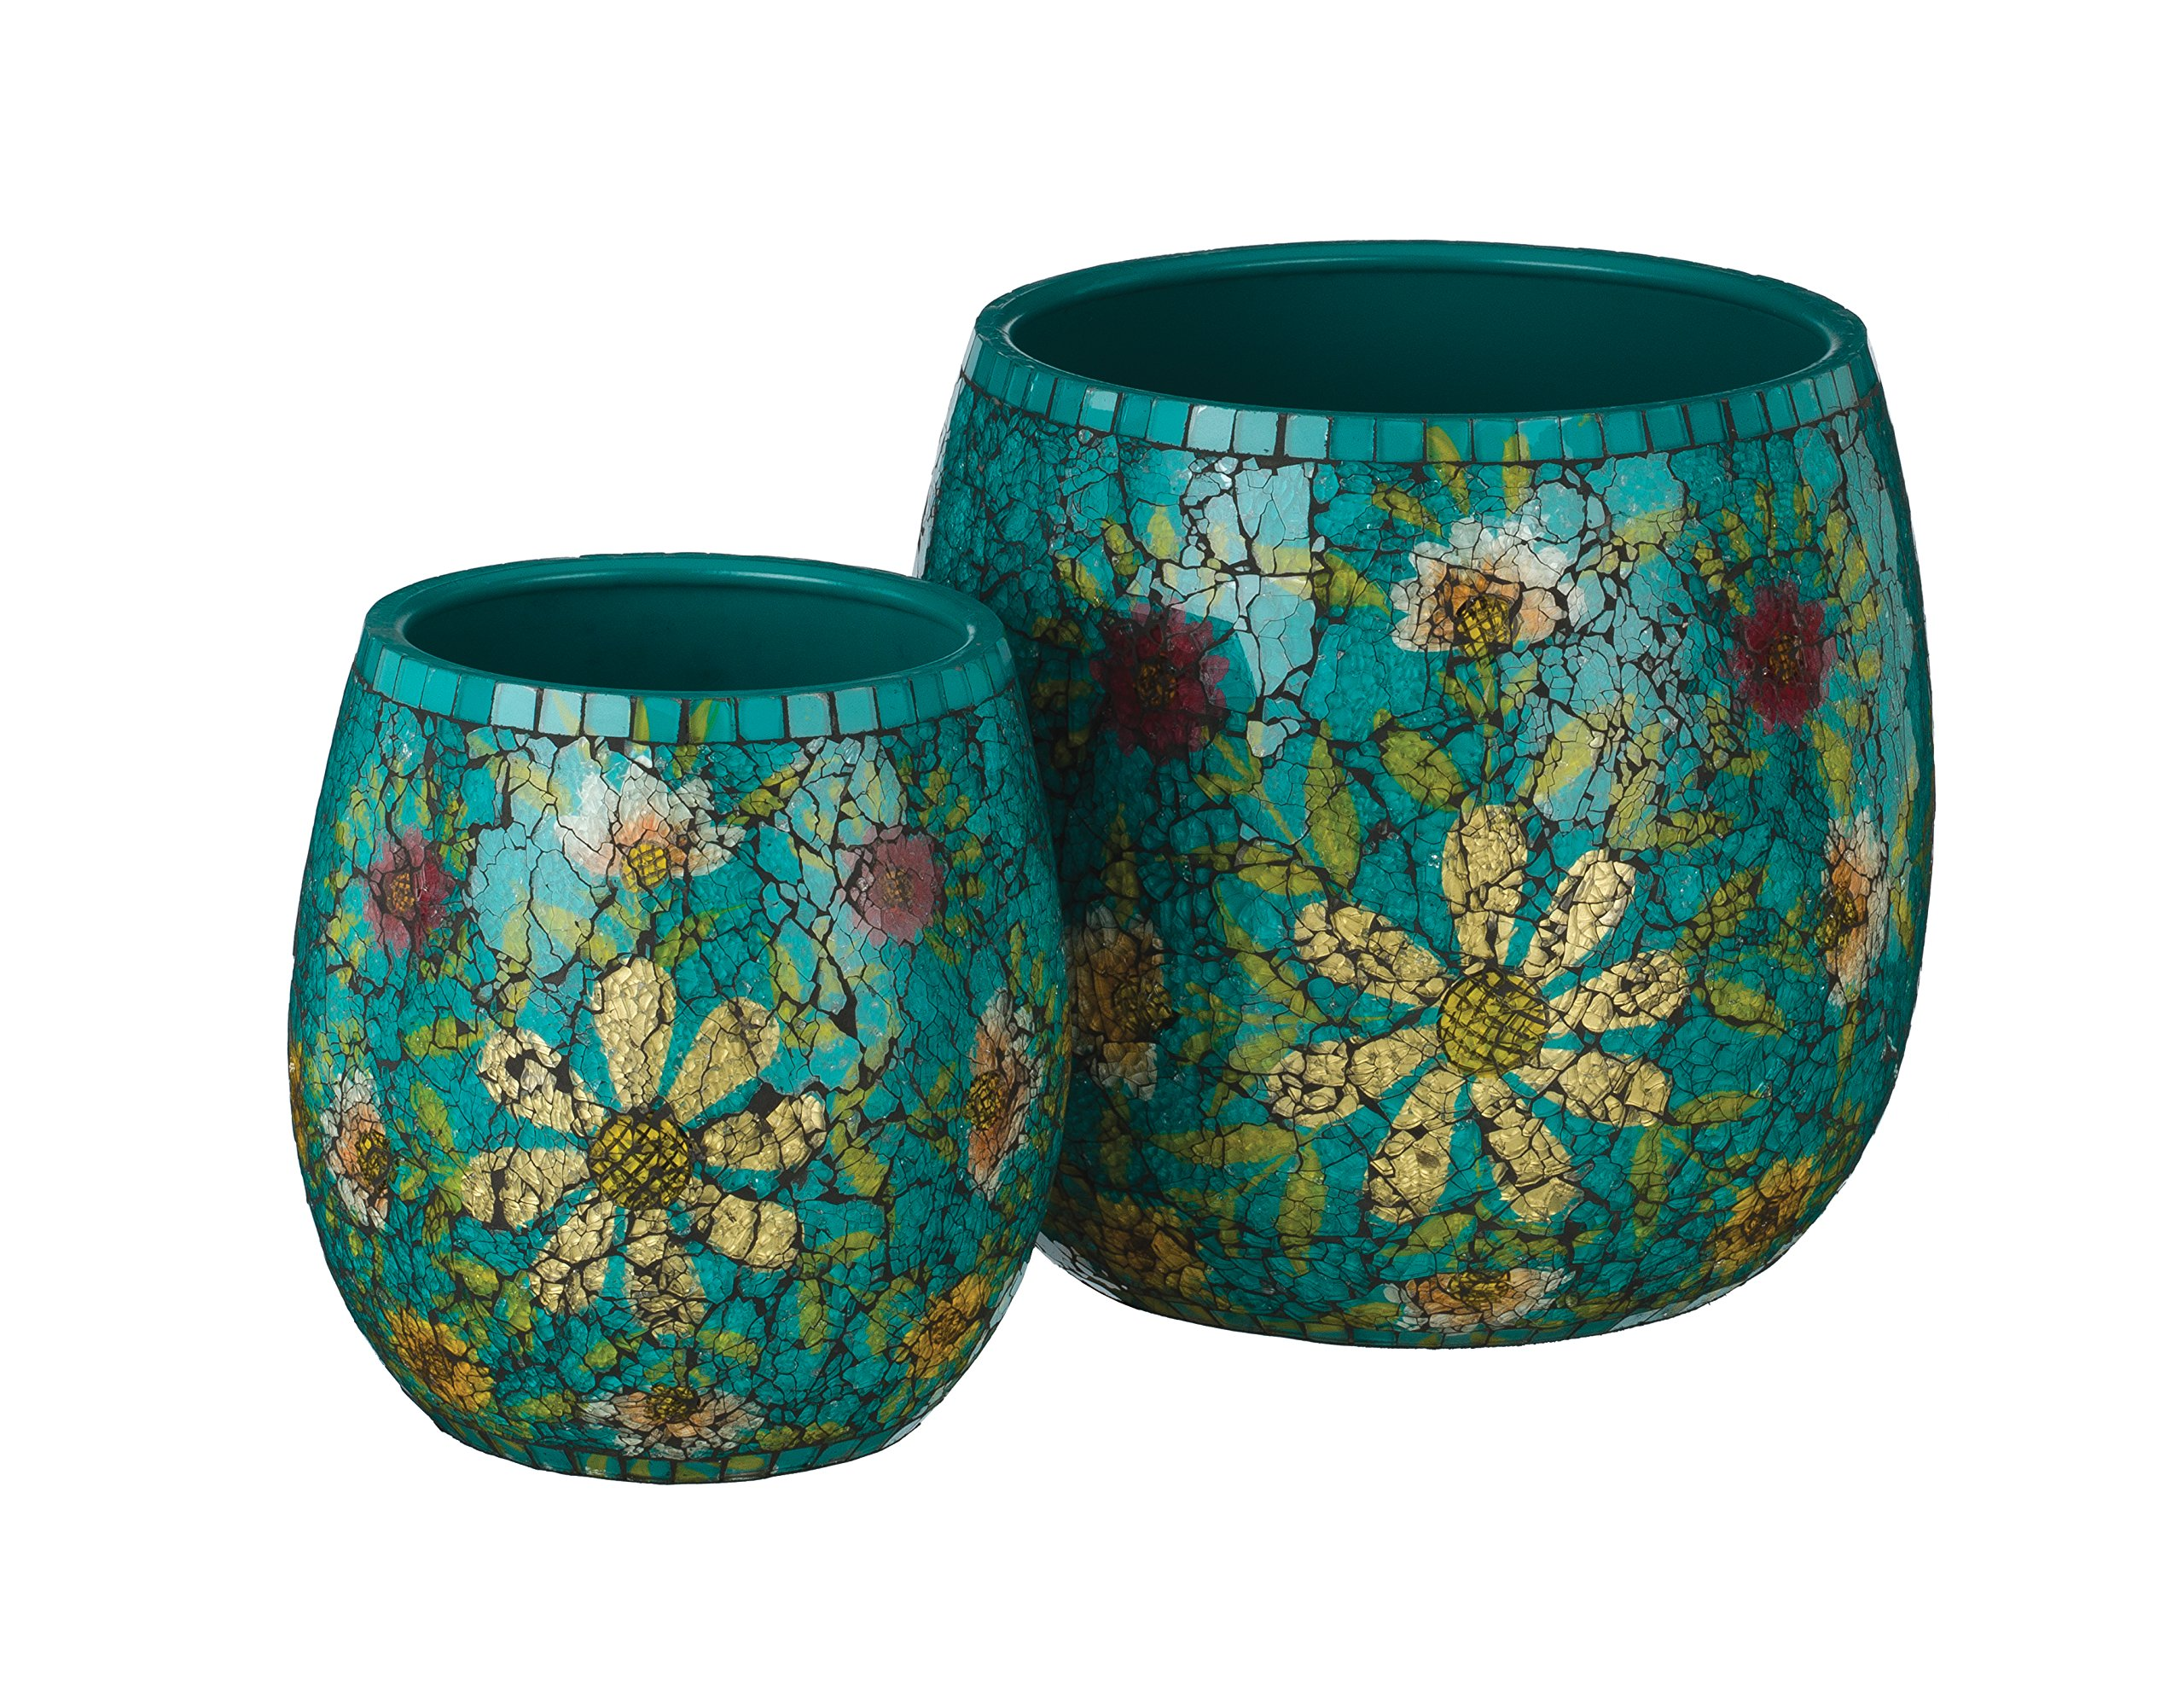 Regal Art & Gift Mosaic Planter (Set of 2), Teal